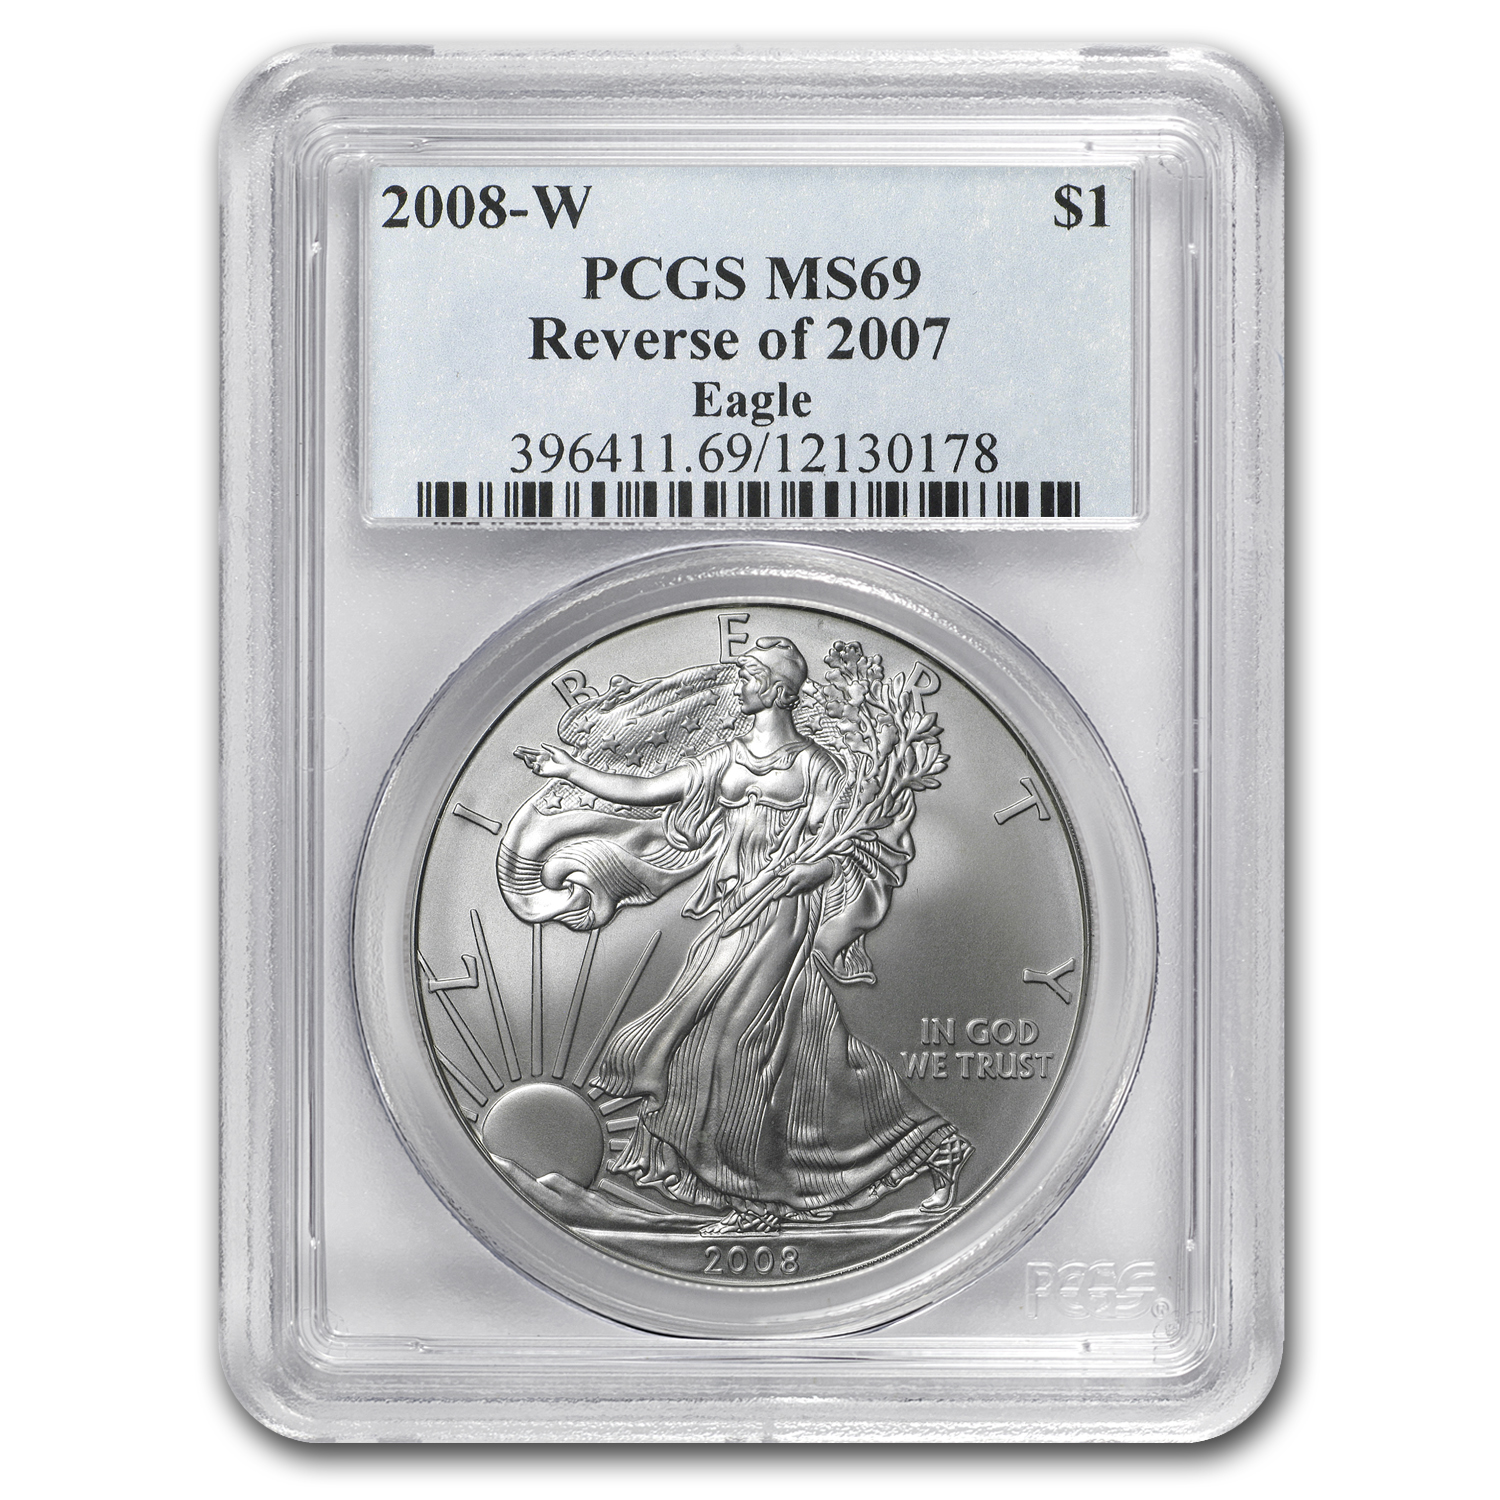 2008-W Burnished Silver American Eagle MS-69 PCGS (Rev '07)